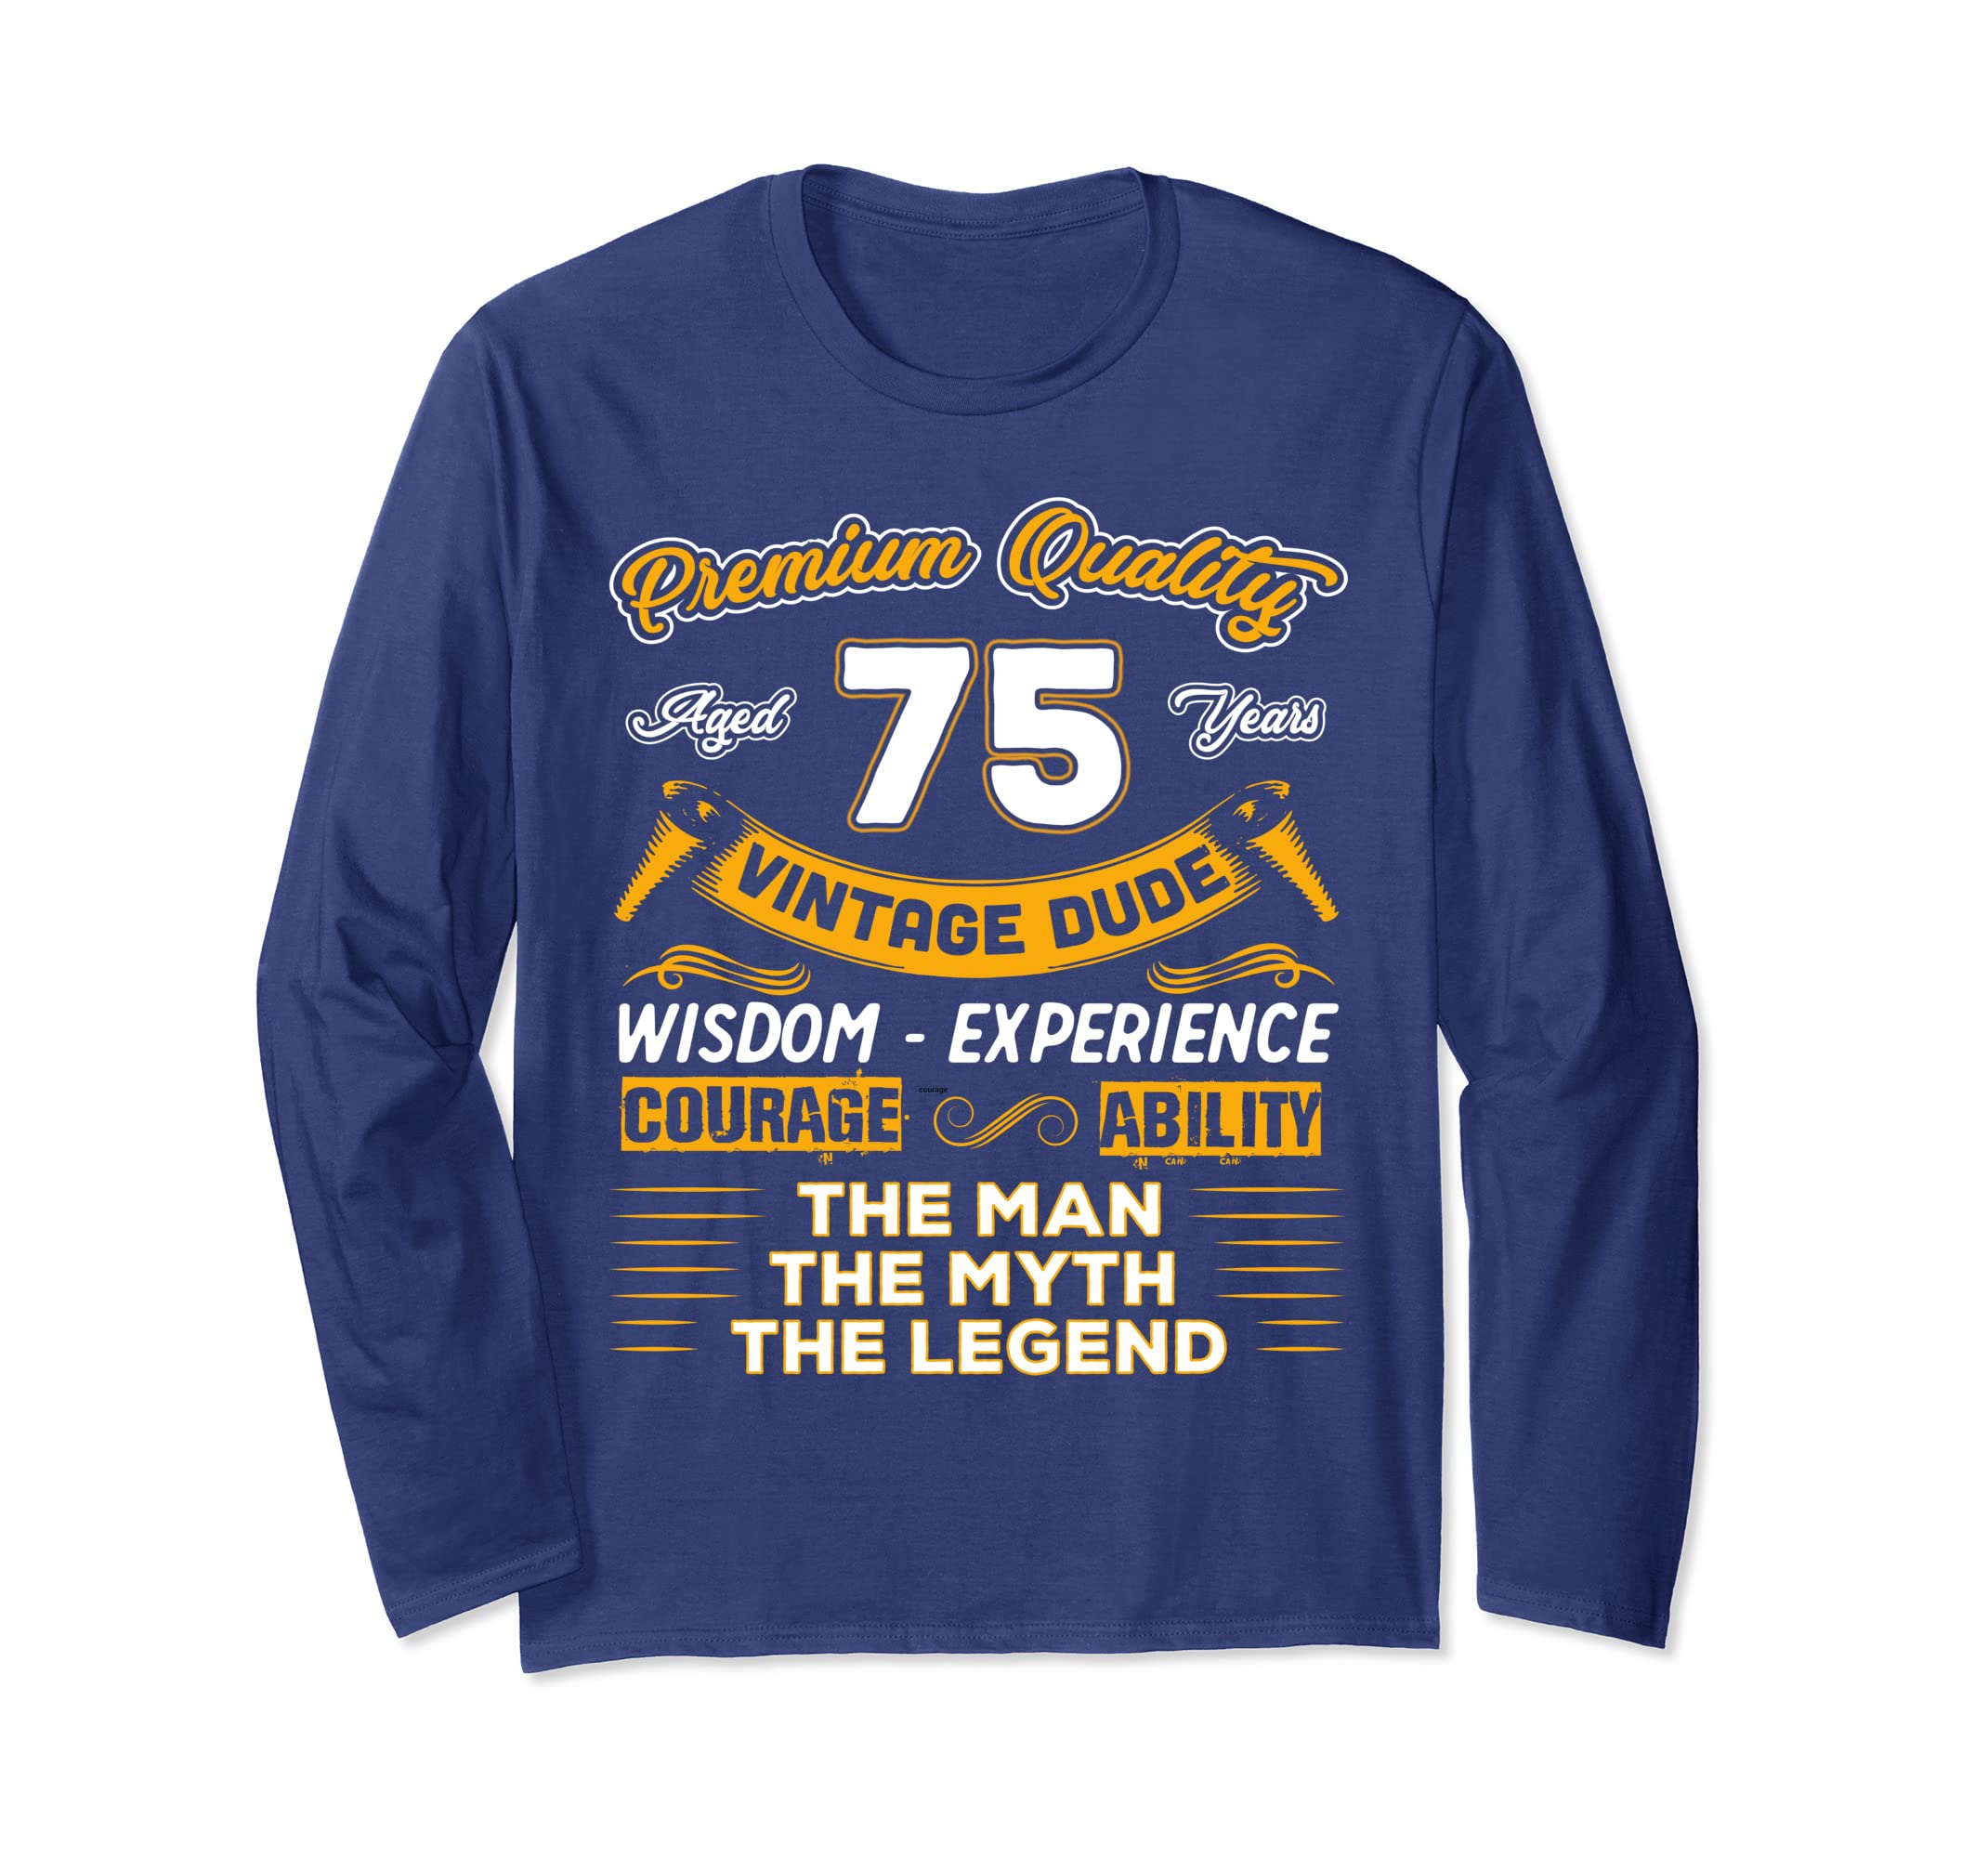 Amazon Gift For 75 Years Old Shirt 75th Vintage The Man Myth Legend Clothing